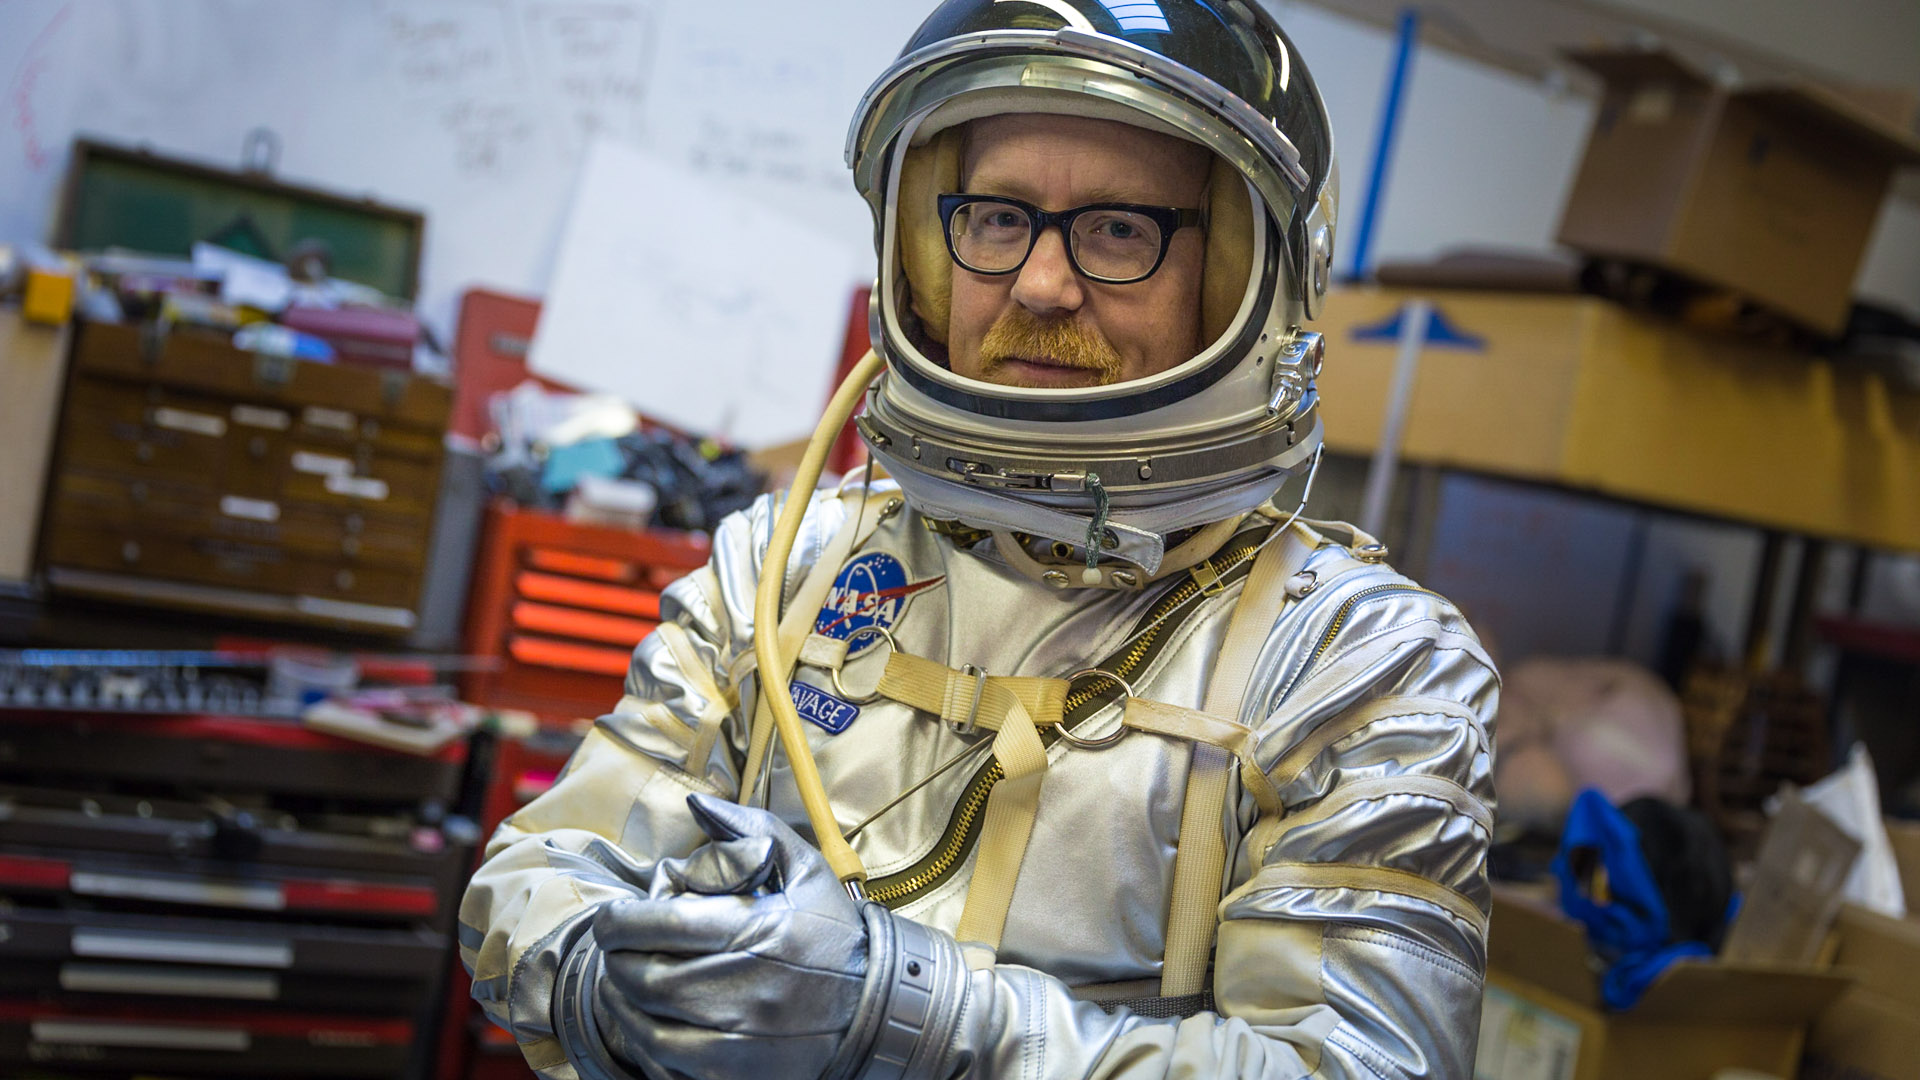 an astronaut in his space suit and with a propulsion - photo #24